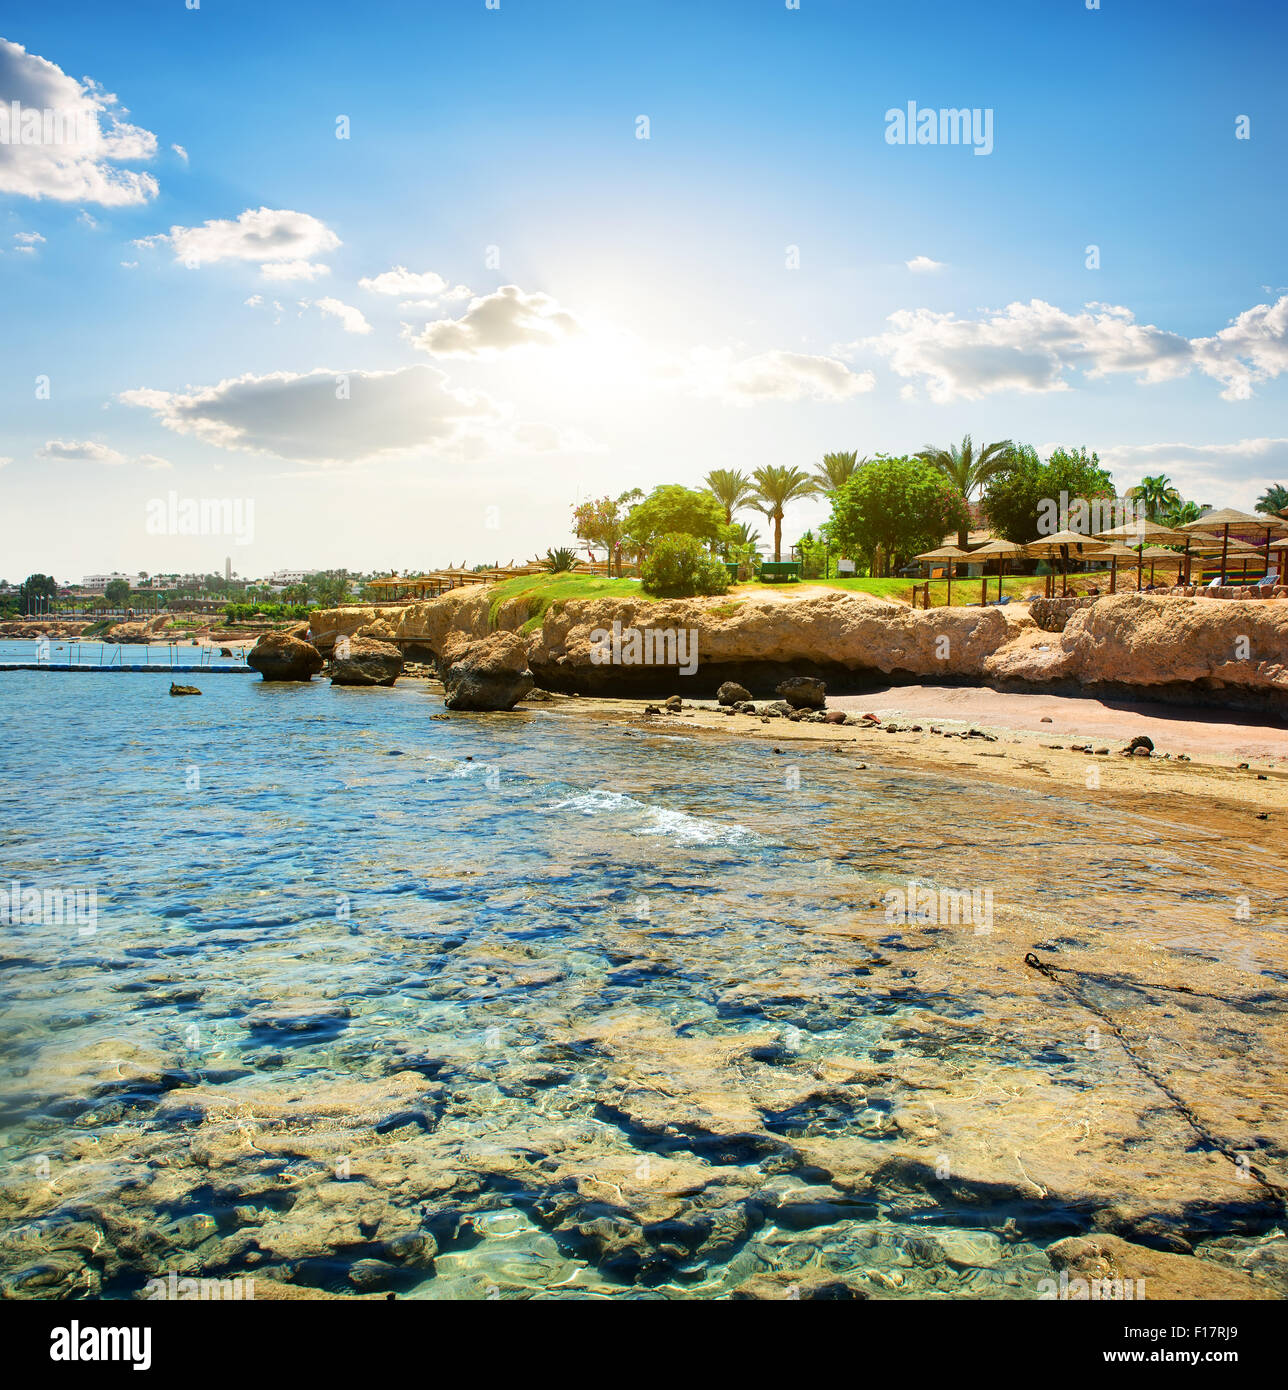 Coral reefs on the beach near hotel - Stock Image